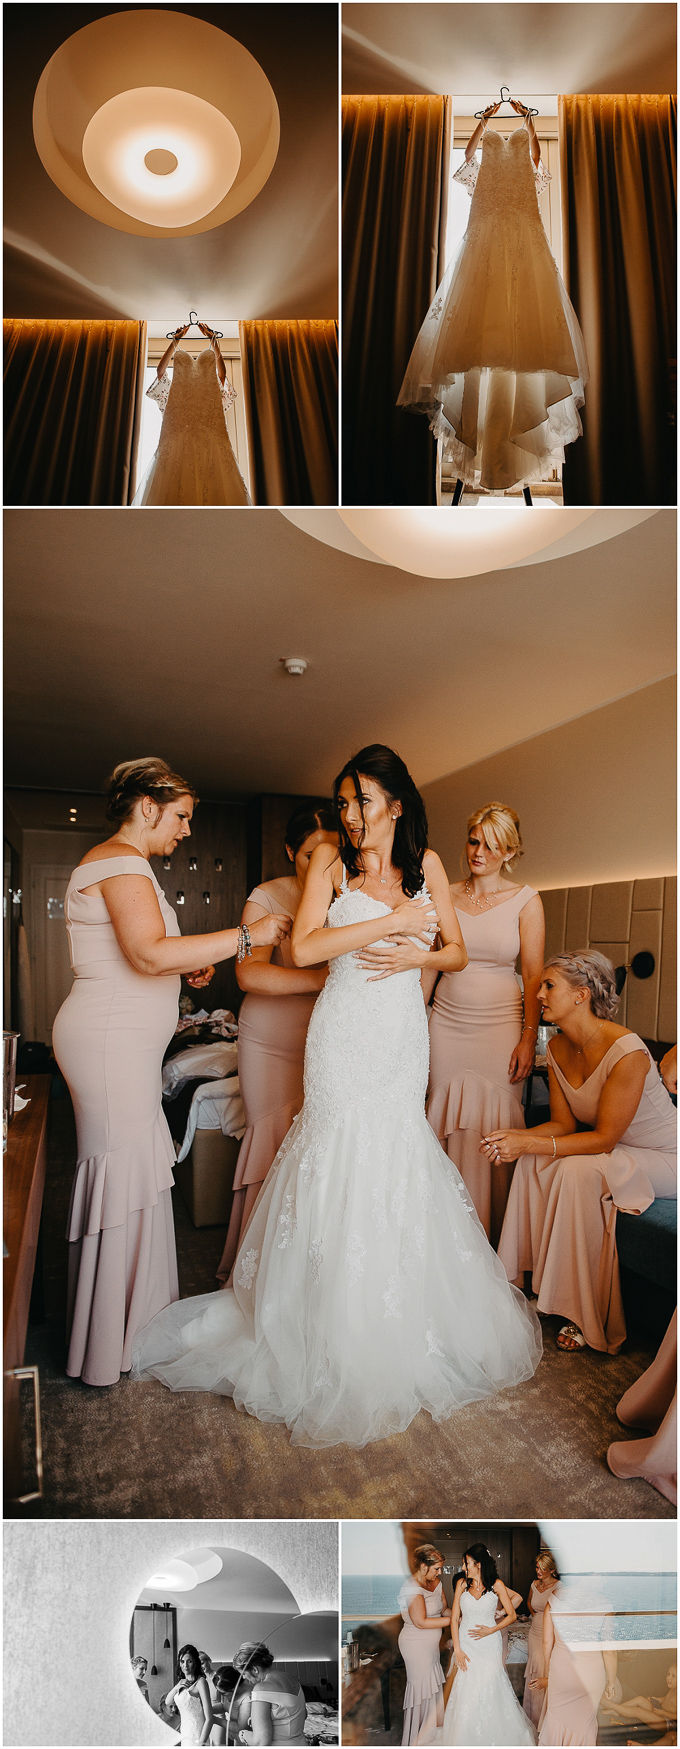 mojfokus-poroka-wedding-bernardin-slovenia-roxy-tom 0018